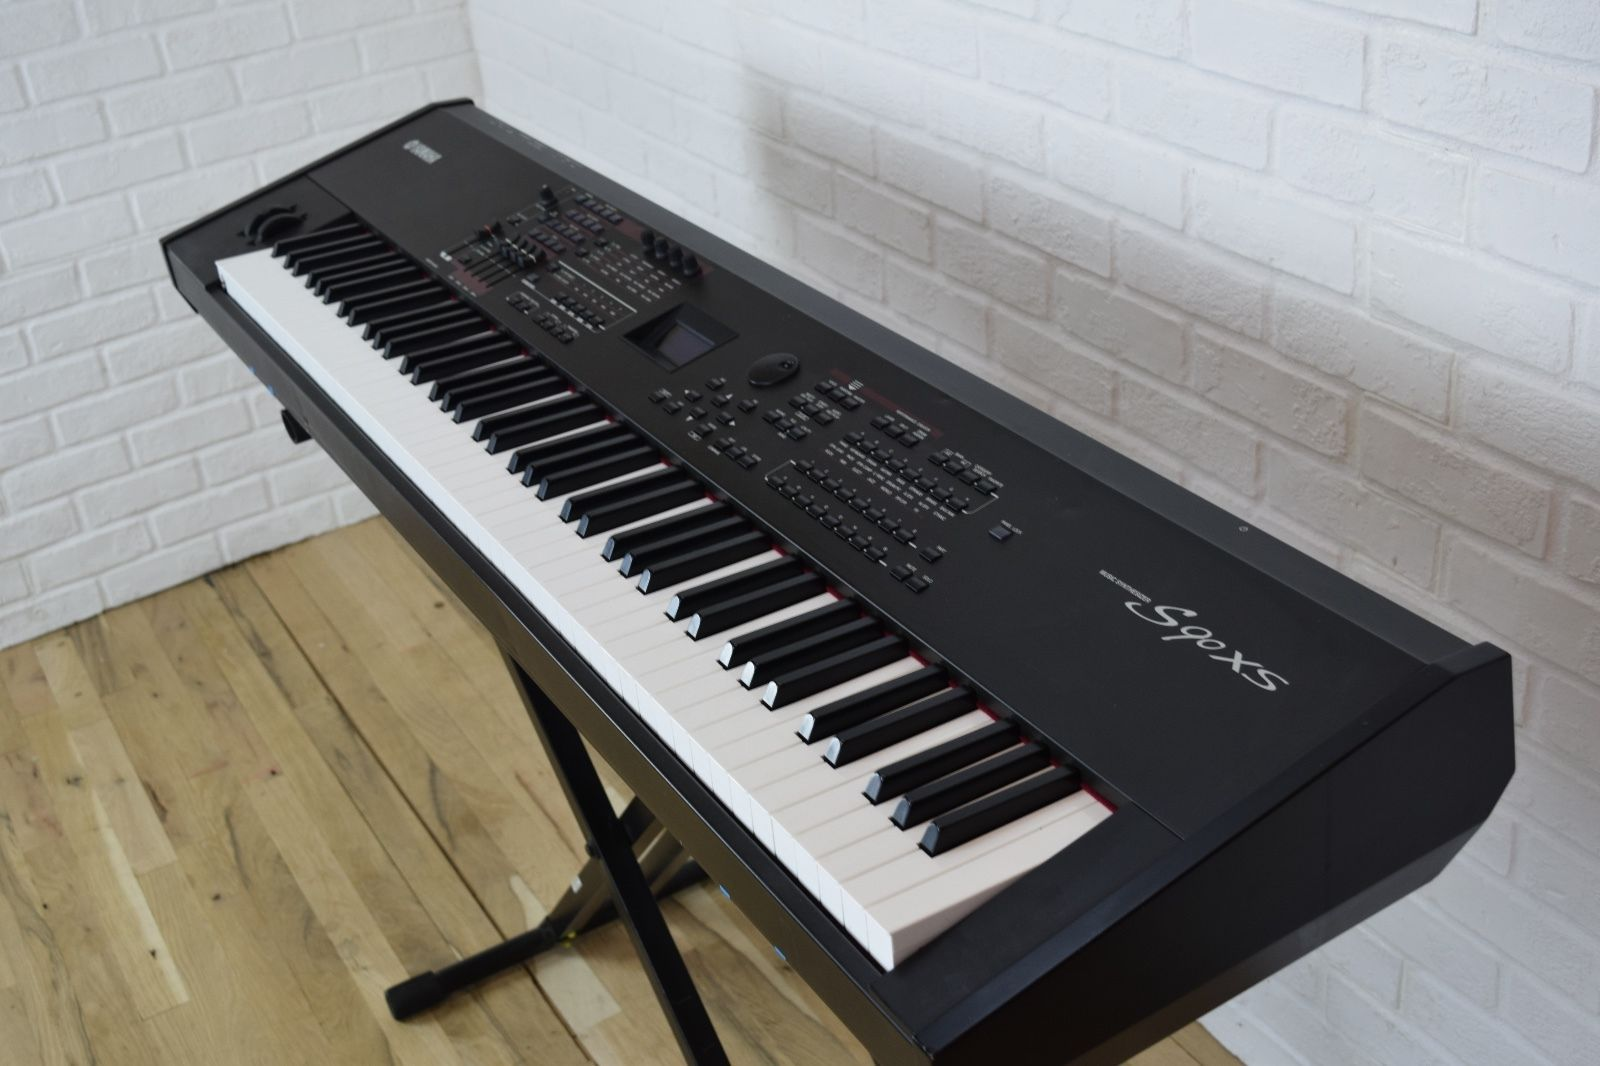 yamaha s90 xs 88 key keyboard synthesizer excellent used 88 key piano for sale common. Black Bedroom Furniture Sets. Home Design Ideas